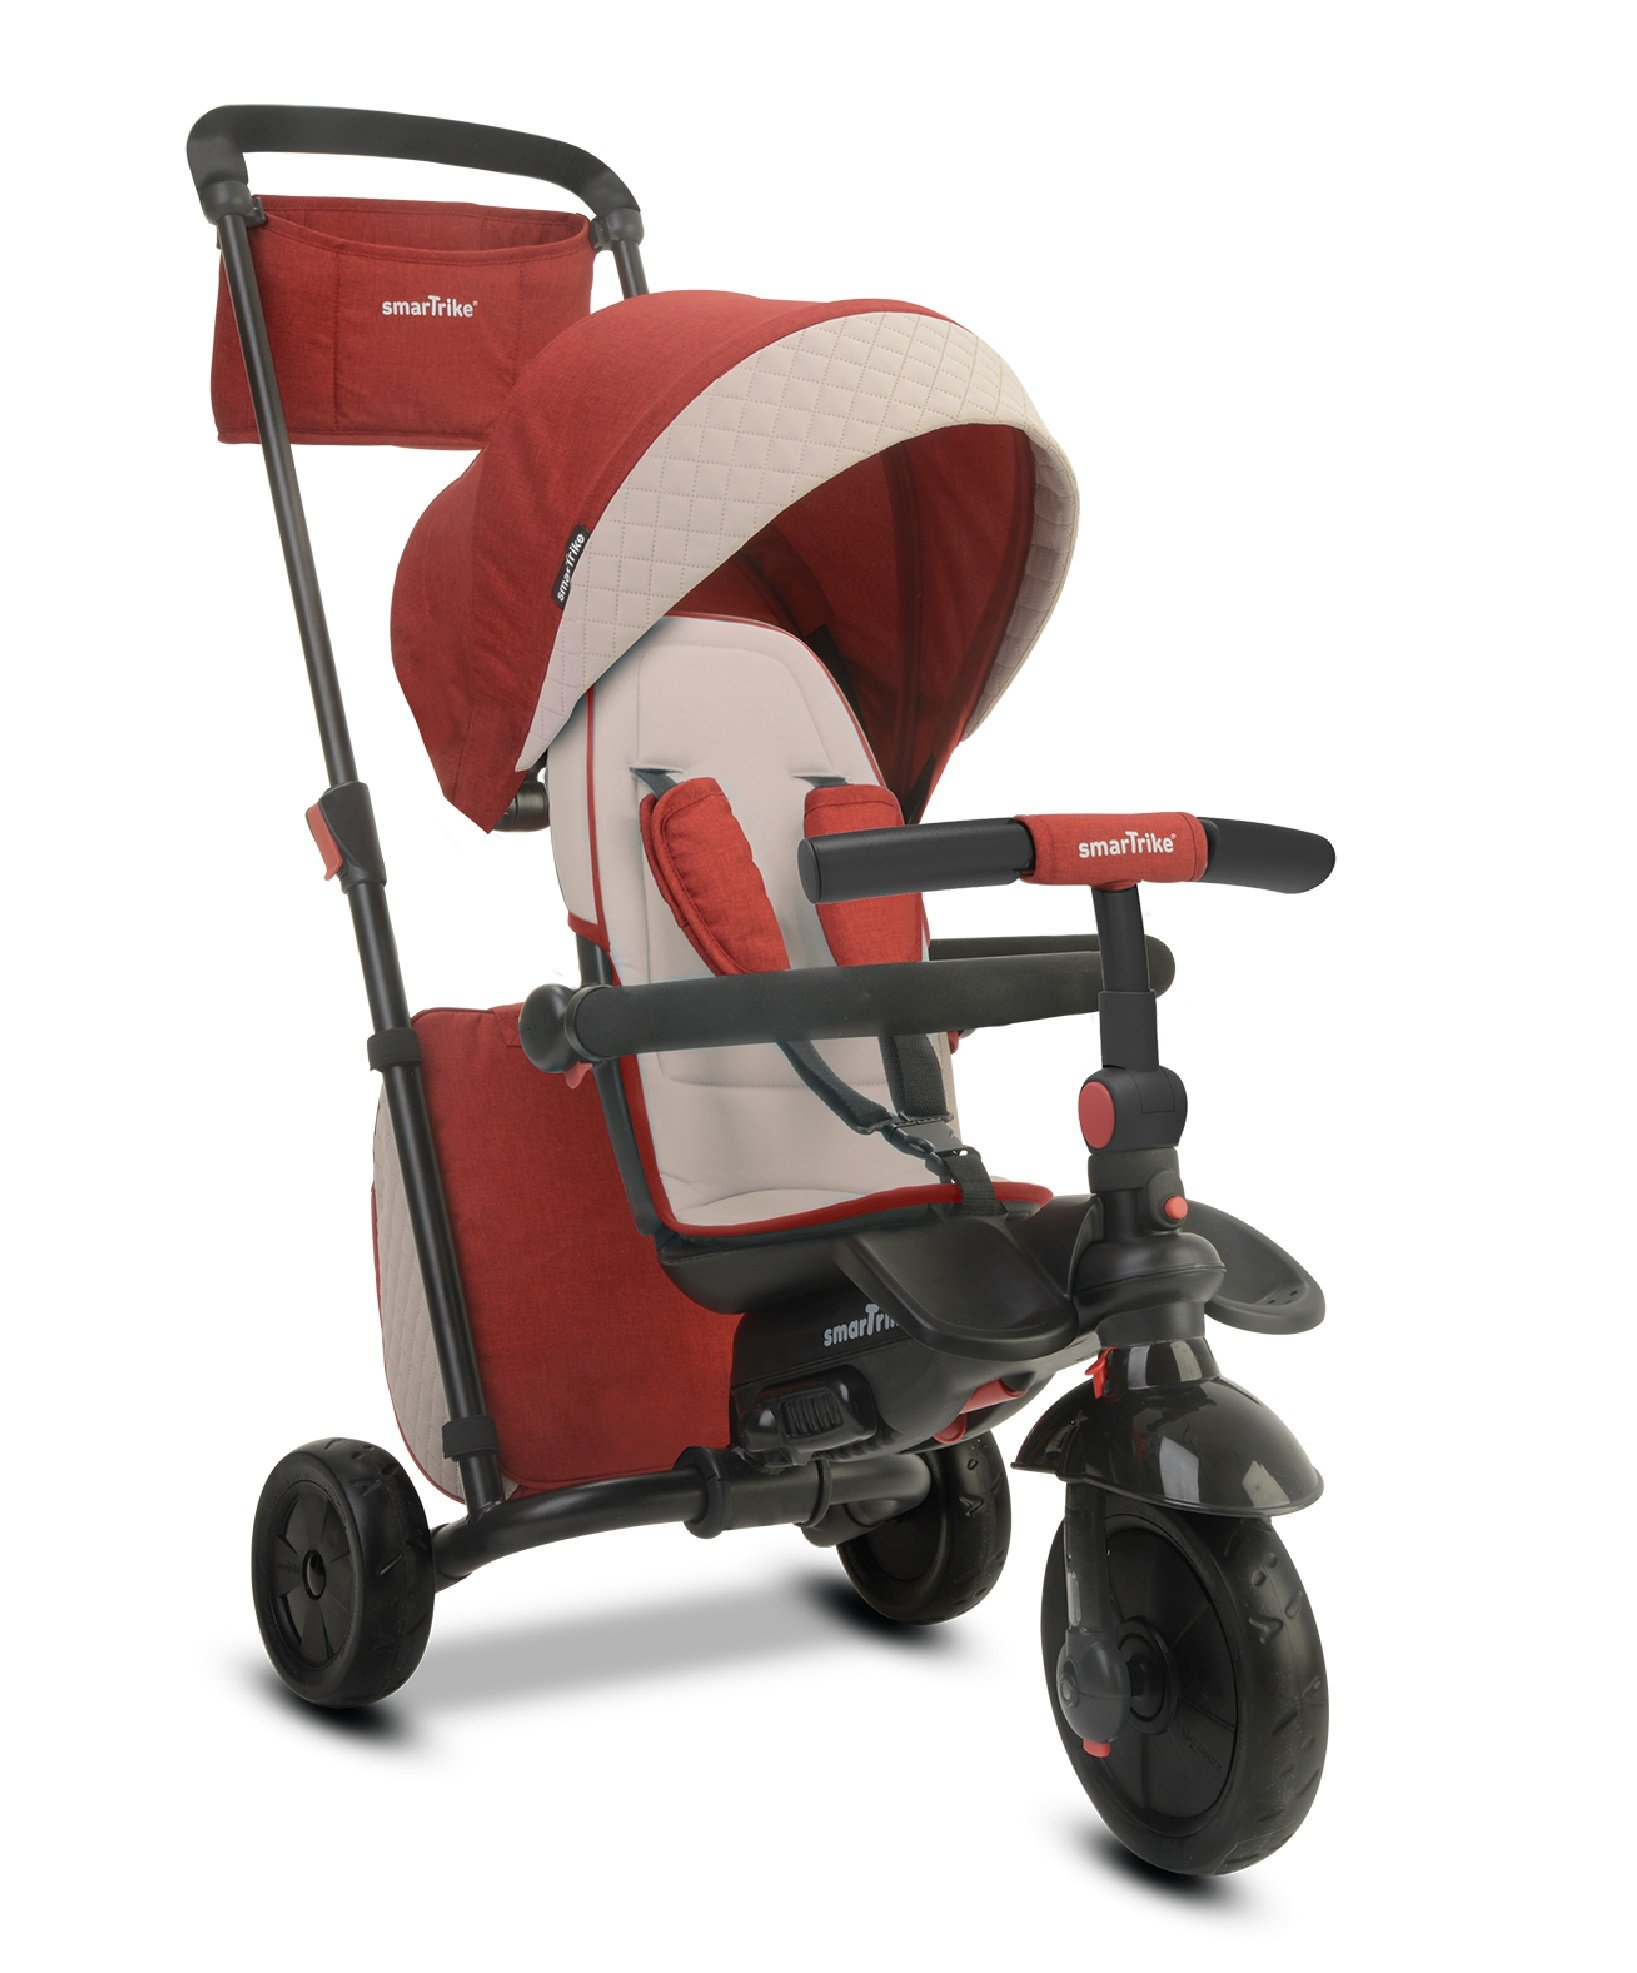 smarTrike Smartfold 600 Baby Tricycle, Red